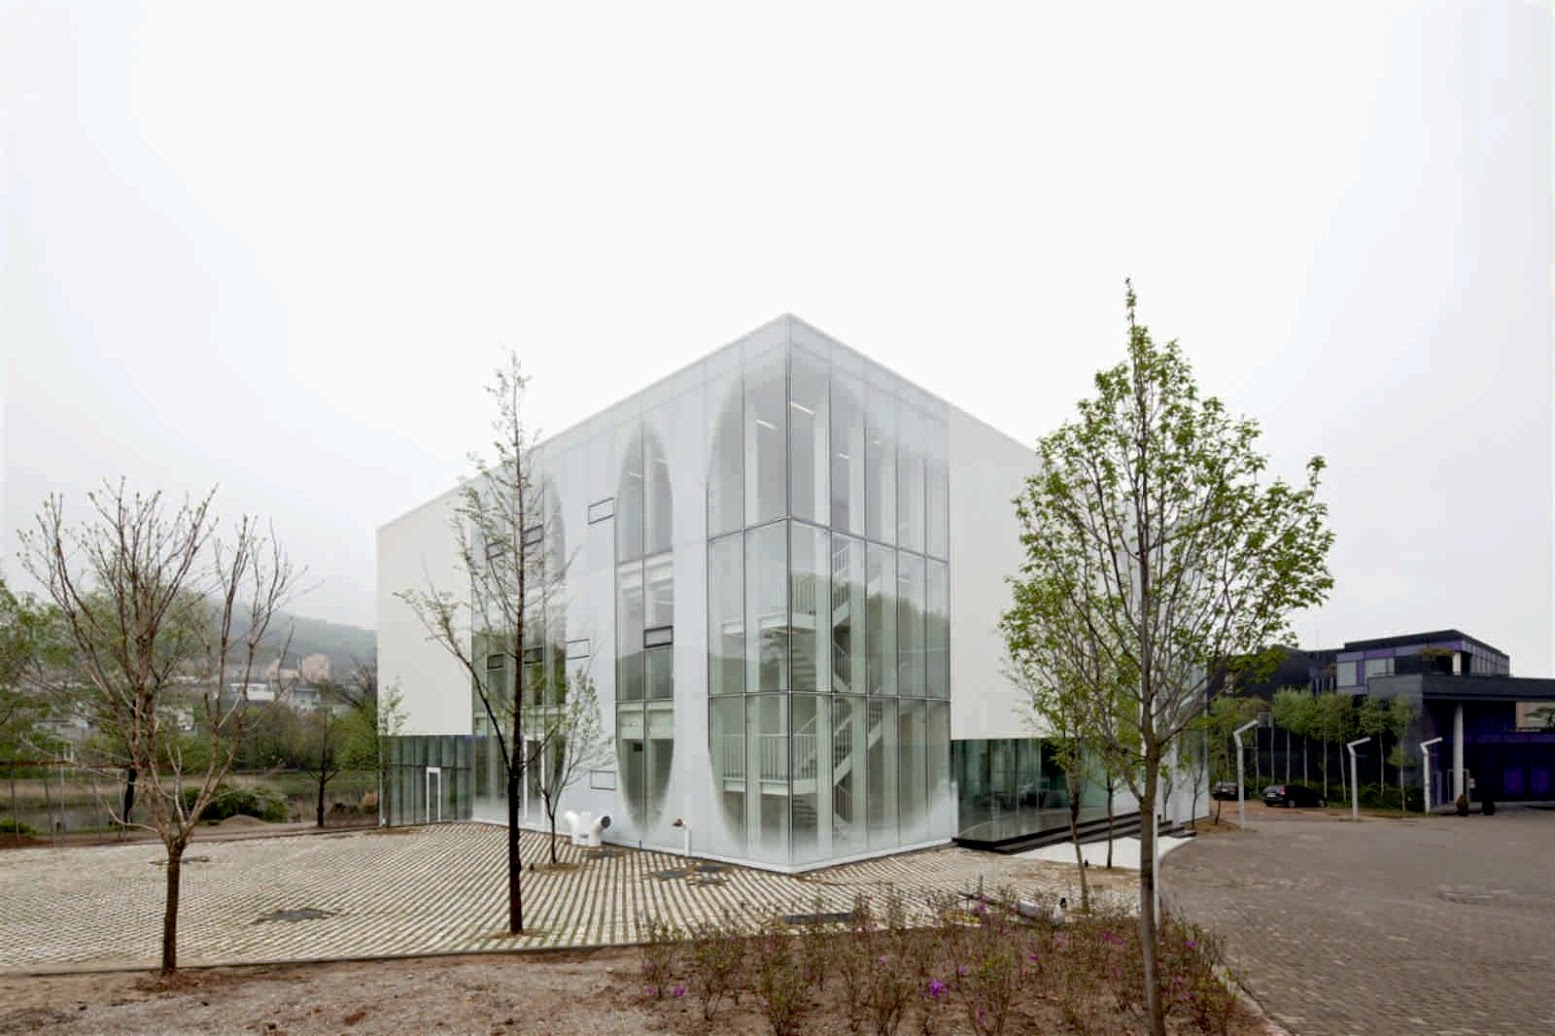 Corea del Sud, Gyeonggi, Paju-si, Tanhyeon-myeon, Beopheung-ri, 헤이리 문화예술마을: [WHITE BLOCK GALLERY BY SSD ARCHITECTURE]